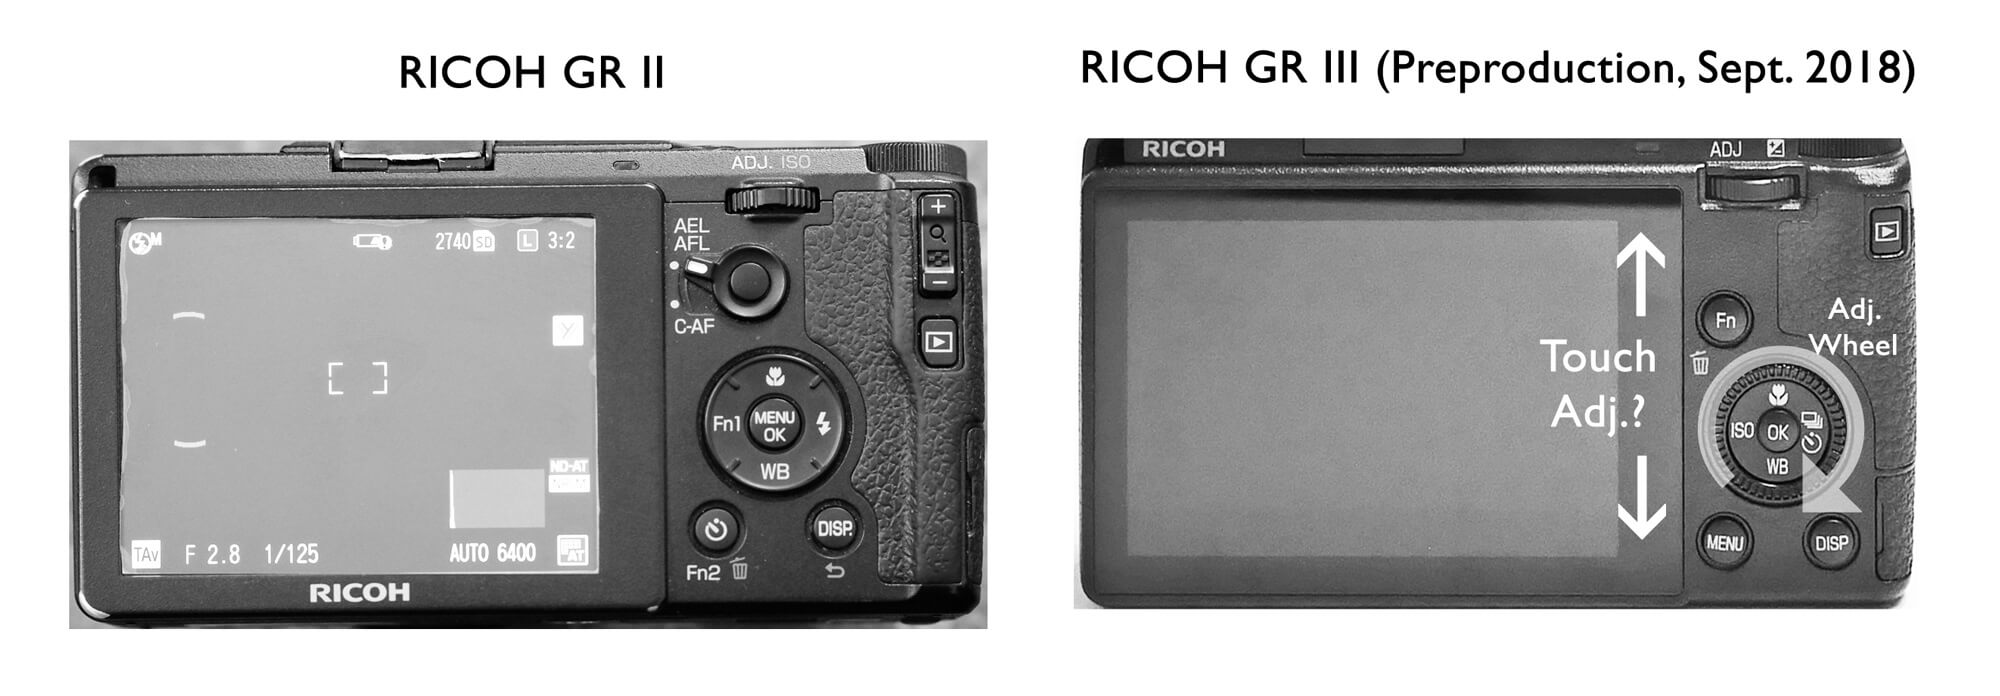 Ricoh GR II VS GR III Preproduction Back Camera Control Button Comparison